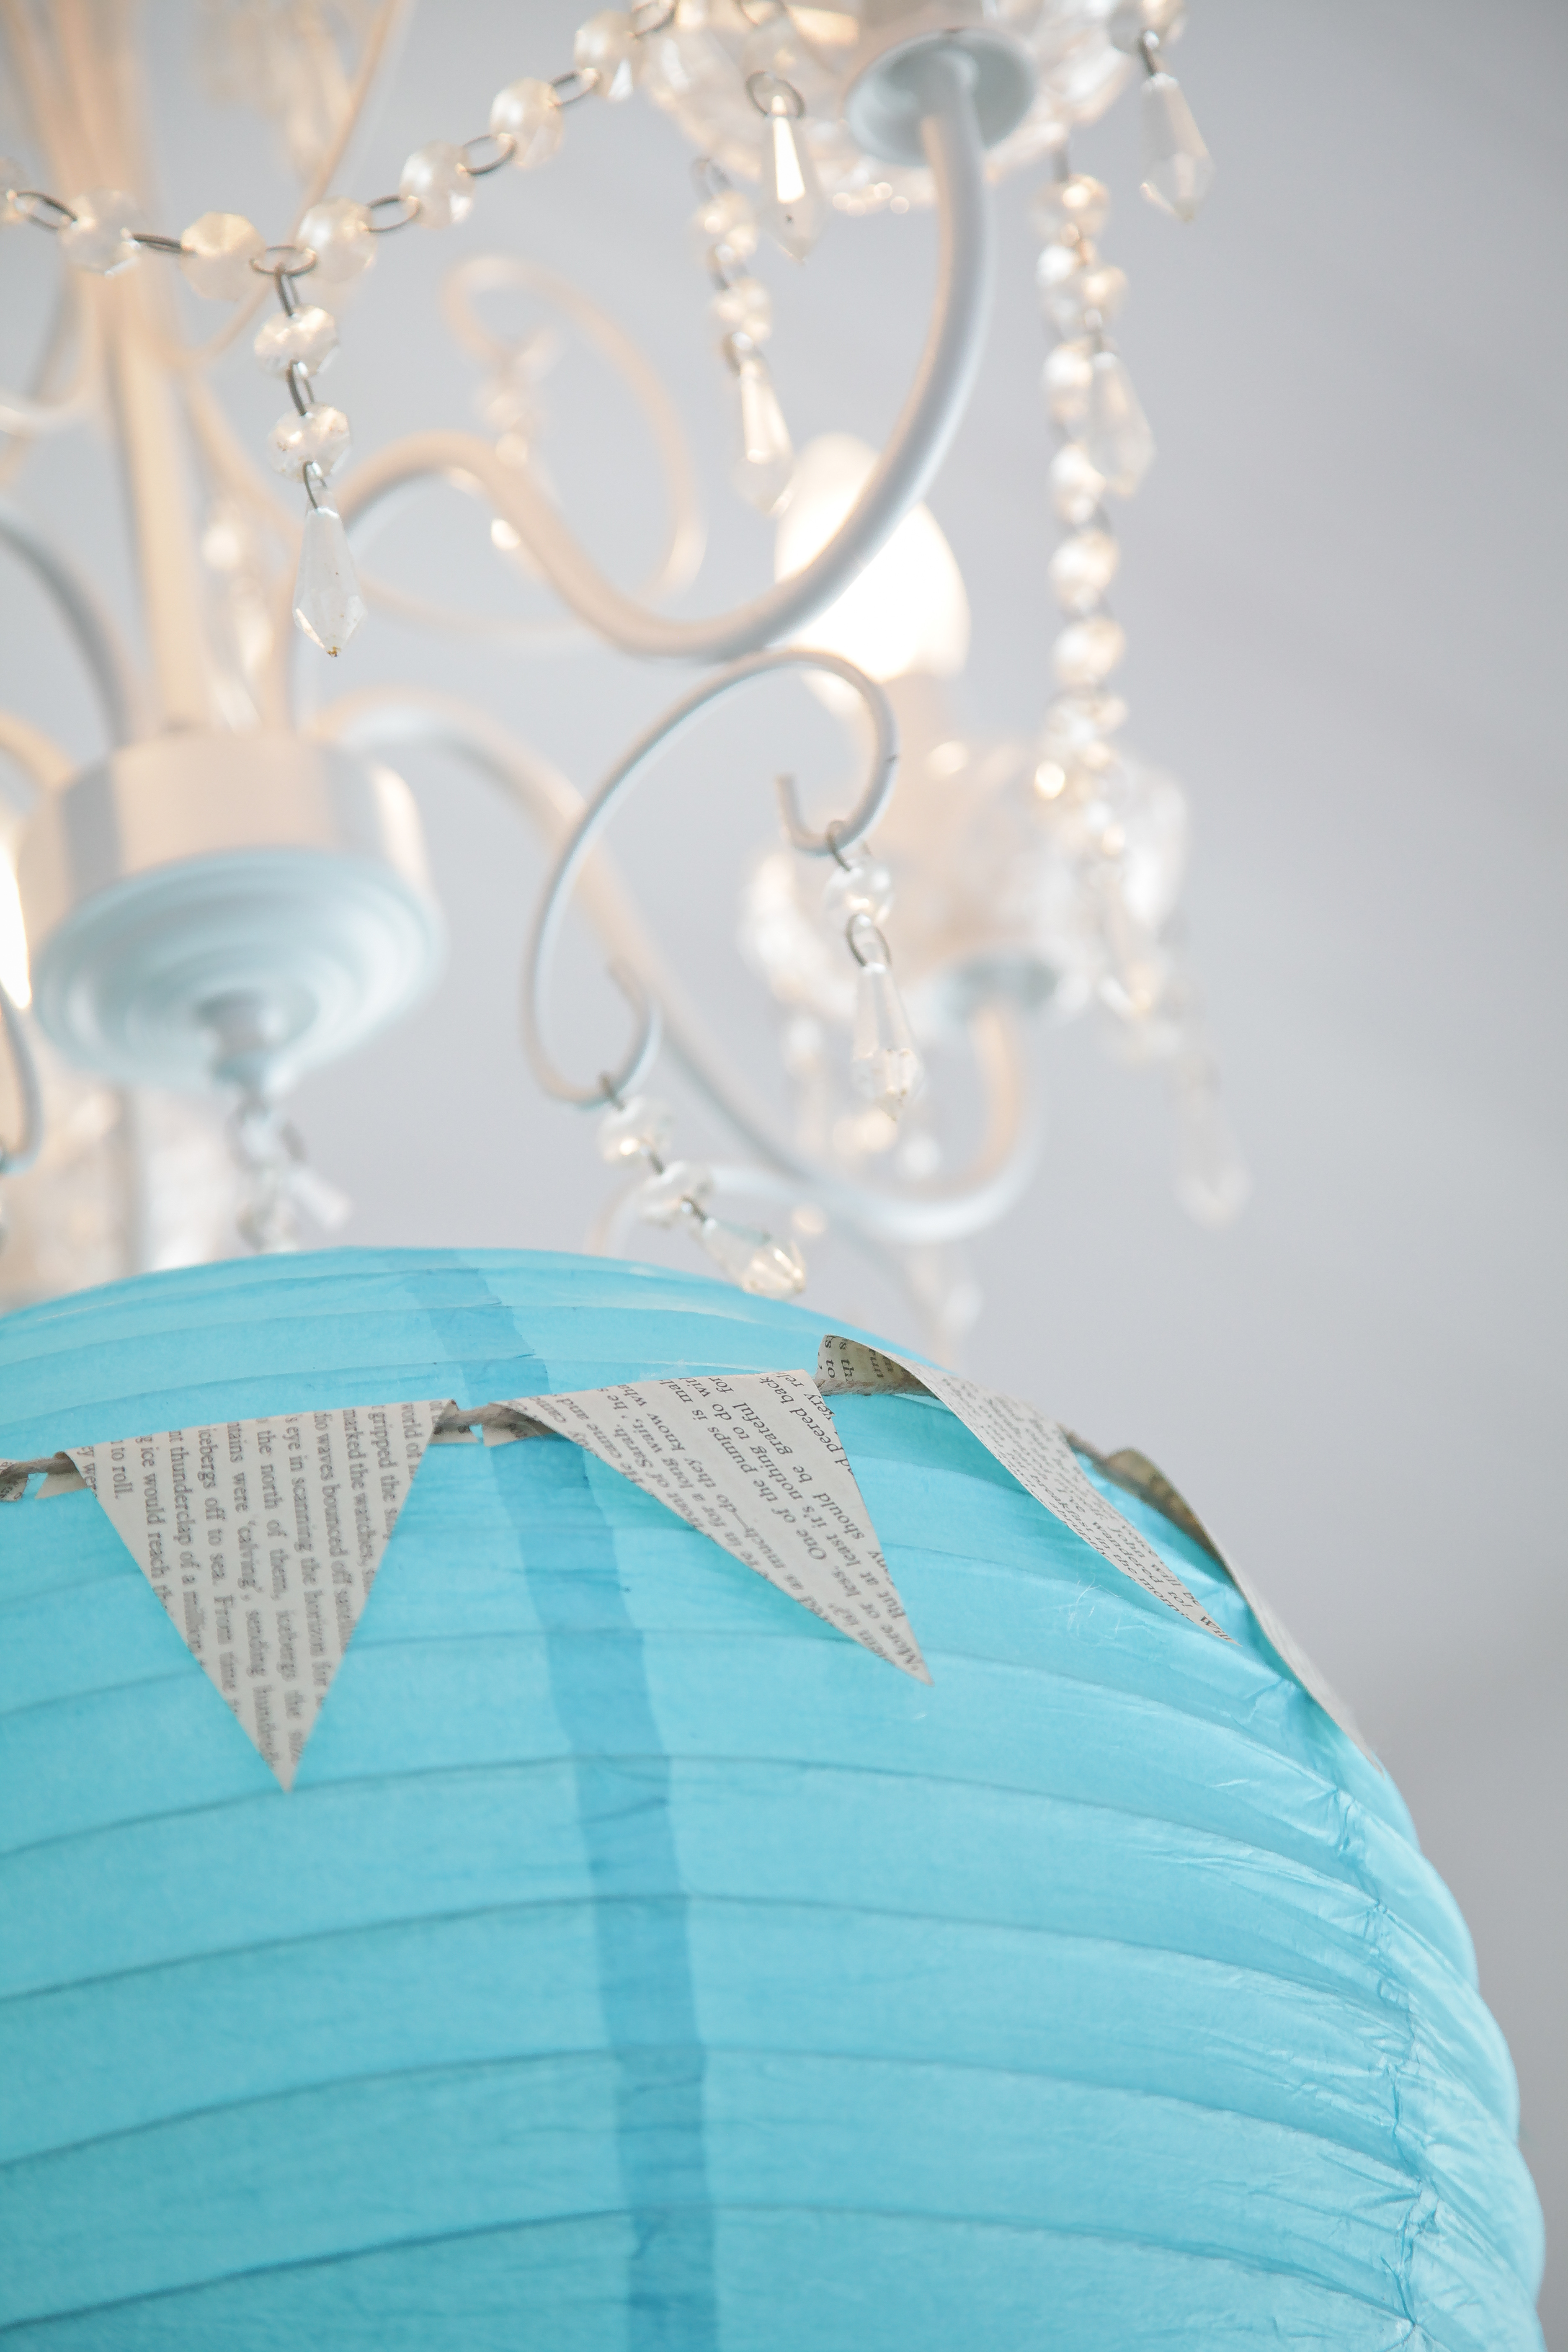 Teal and White Metal Frame Chandelier · Free Stock